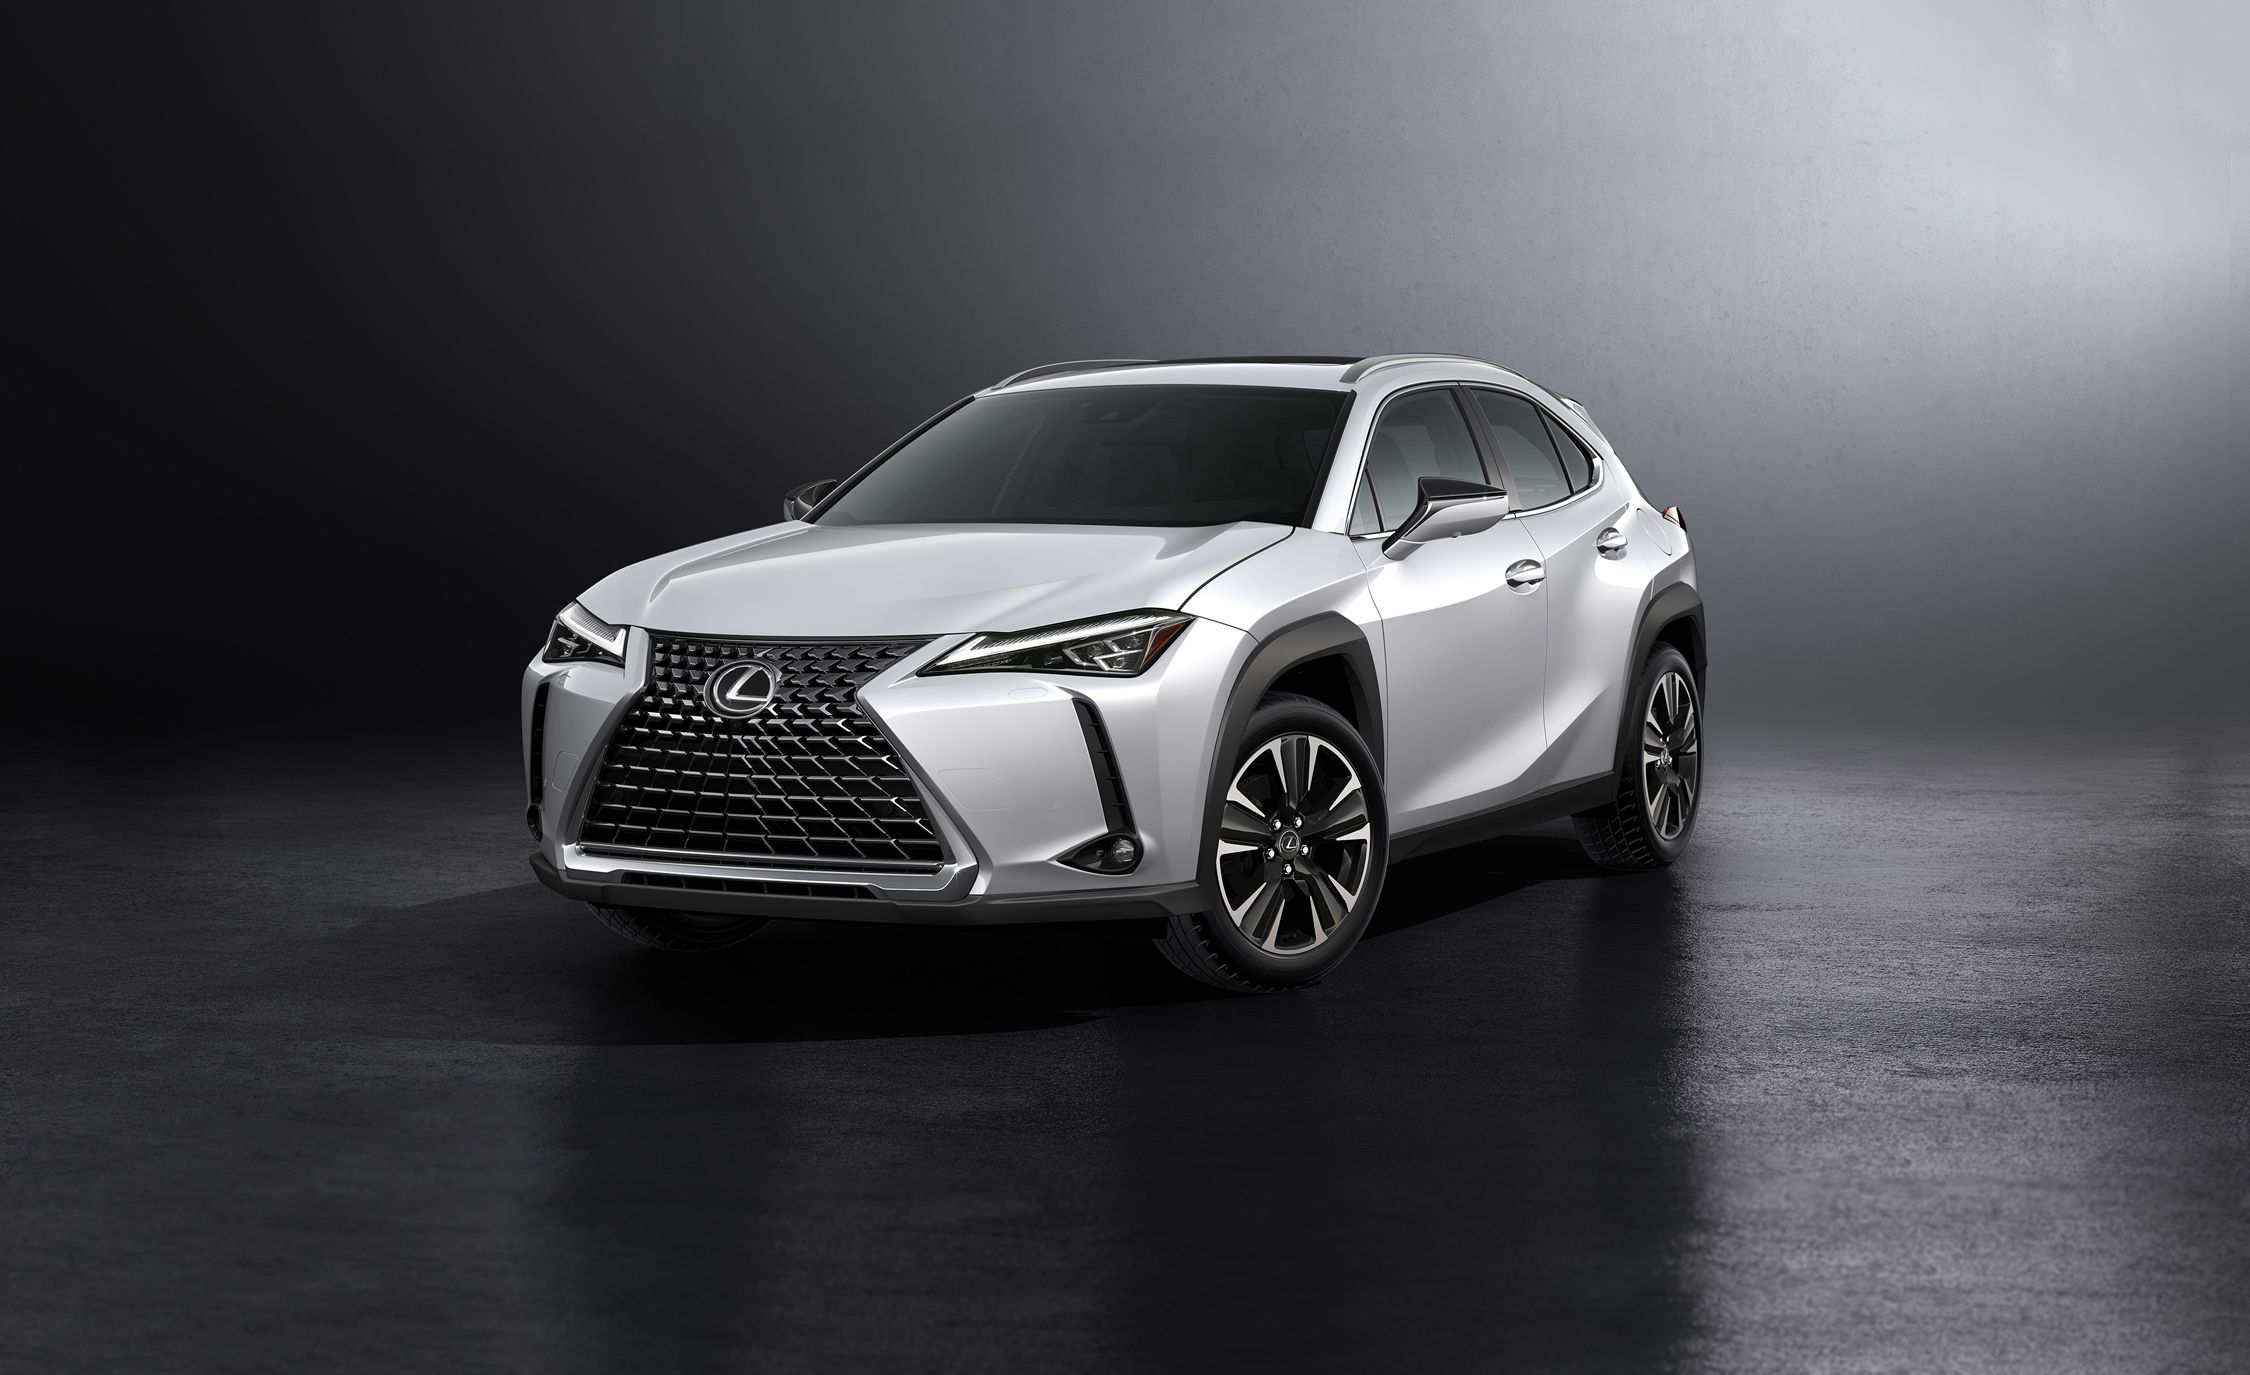 64 New 2019 Lexus Cars First Drive by 2019 Lexus Cars